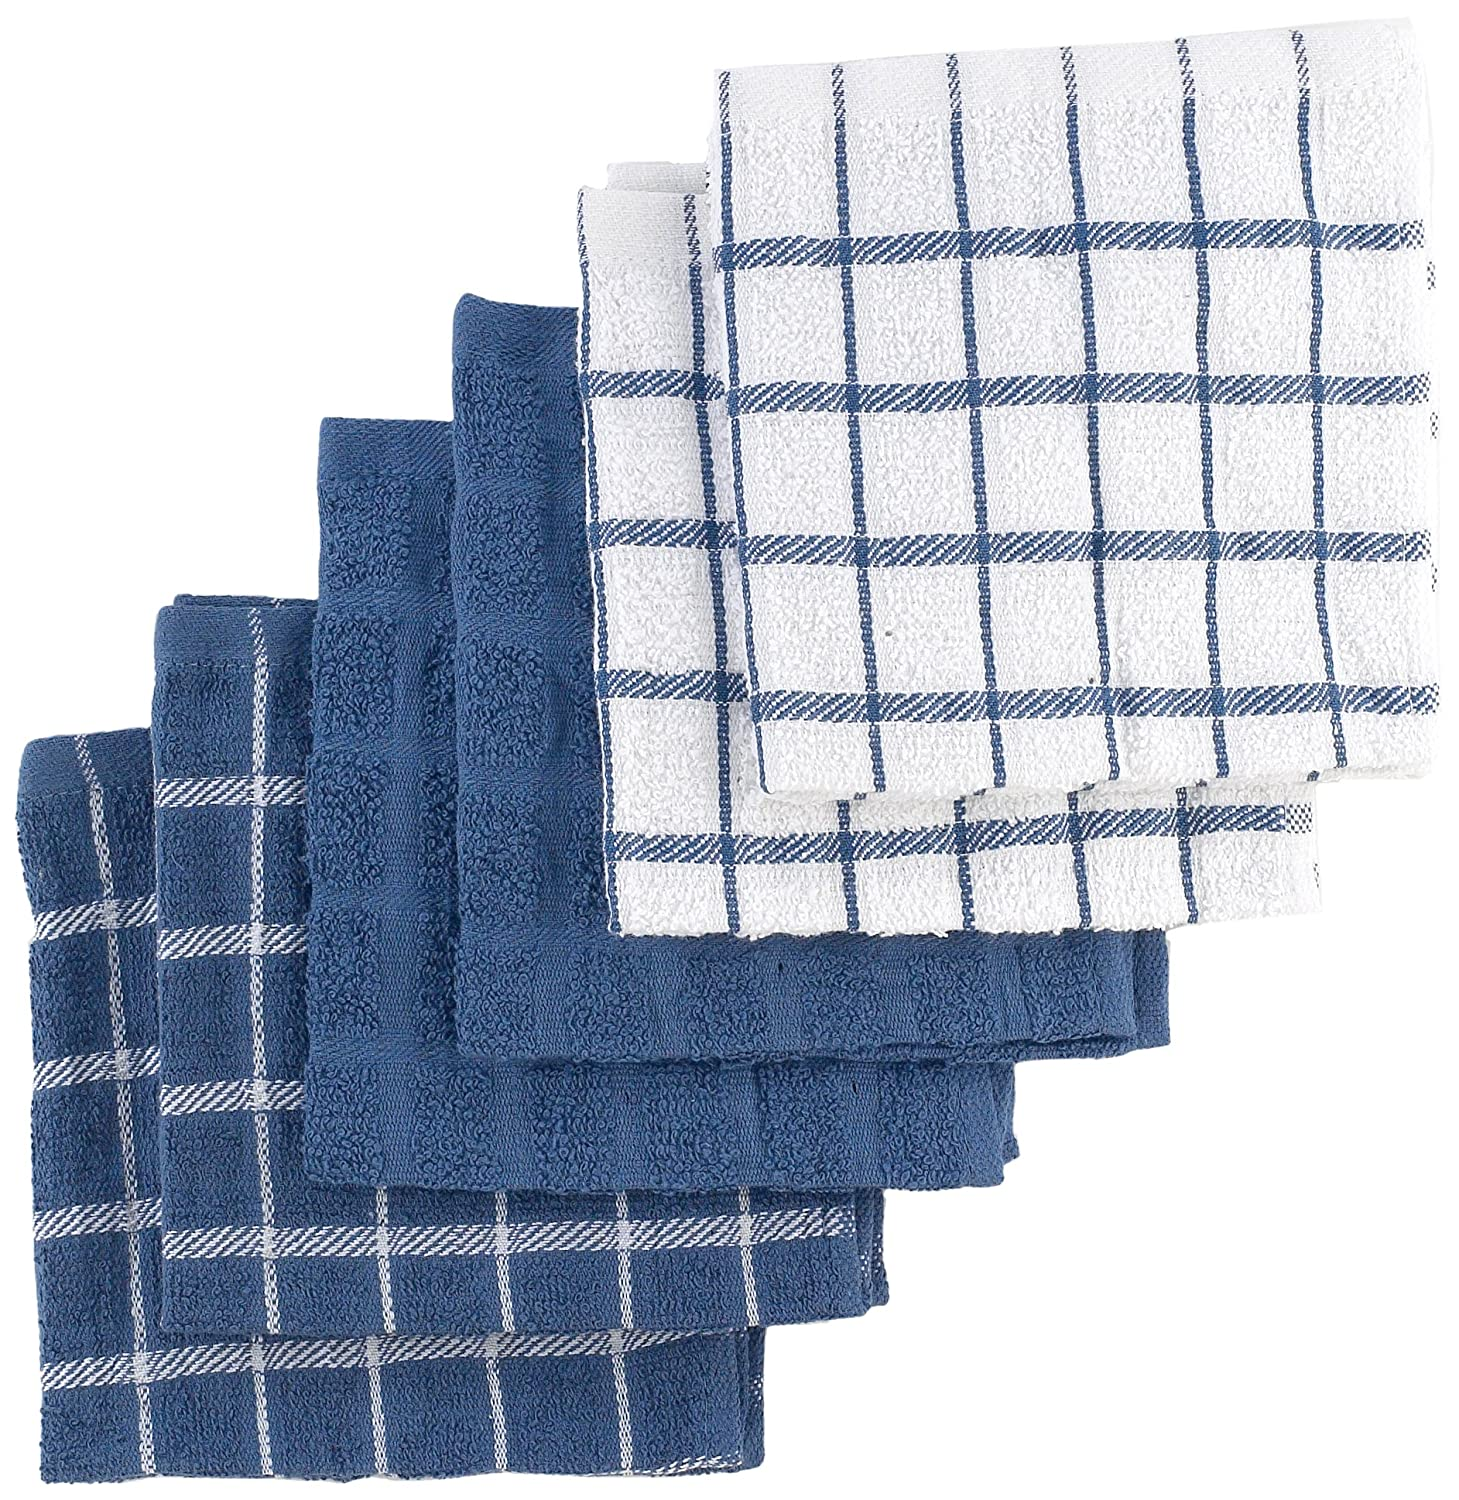 Ritz 100% Cotton Terry Kitchen Dish Towels, Highly Absorbent Dish Cloths,  12u201d X 12u201d, 6 Pack, Federal Blue